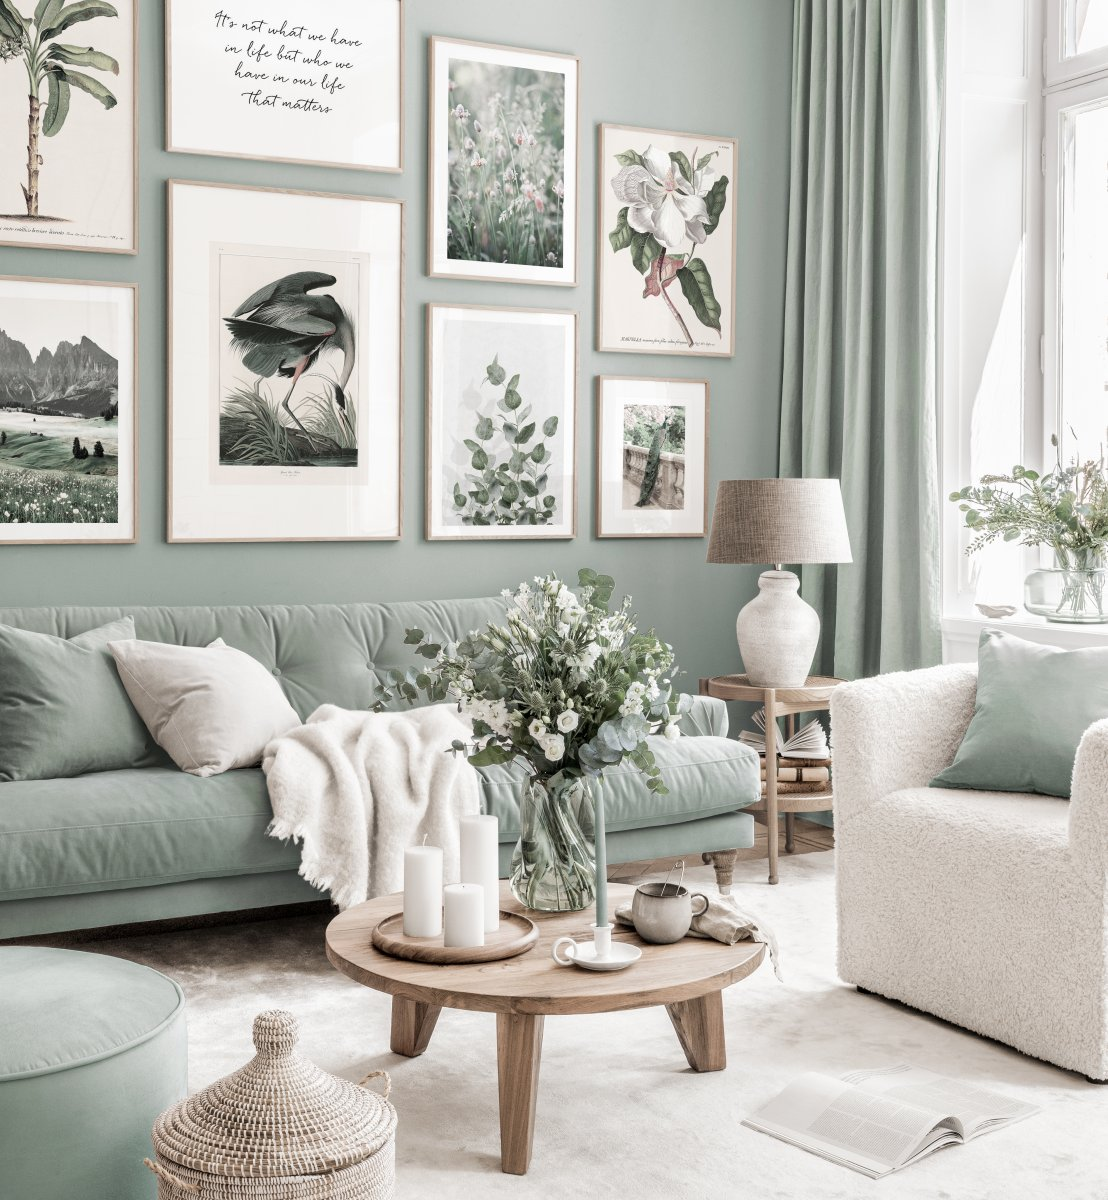 Stylish Gallery Wall Mint Green Living, Green Living Room